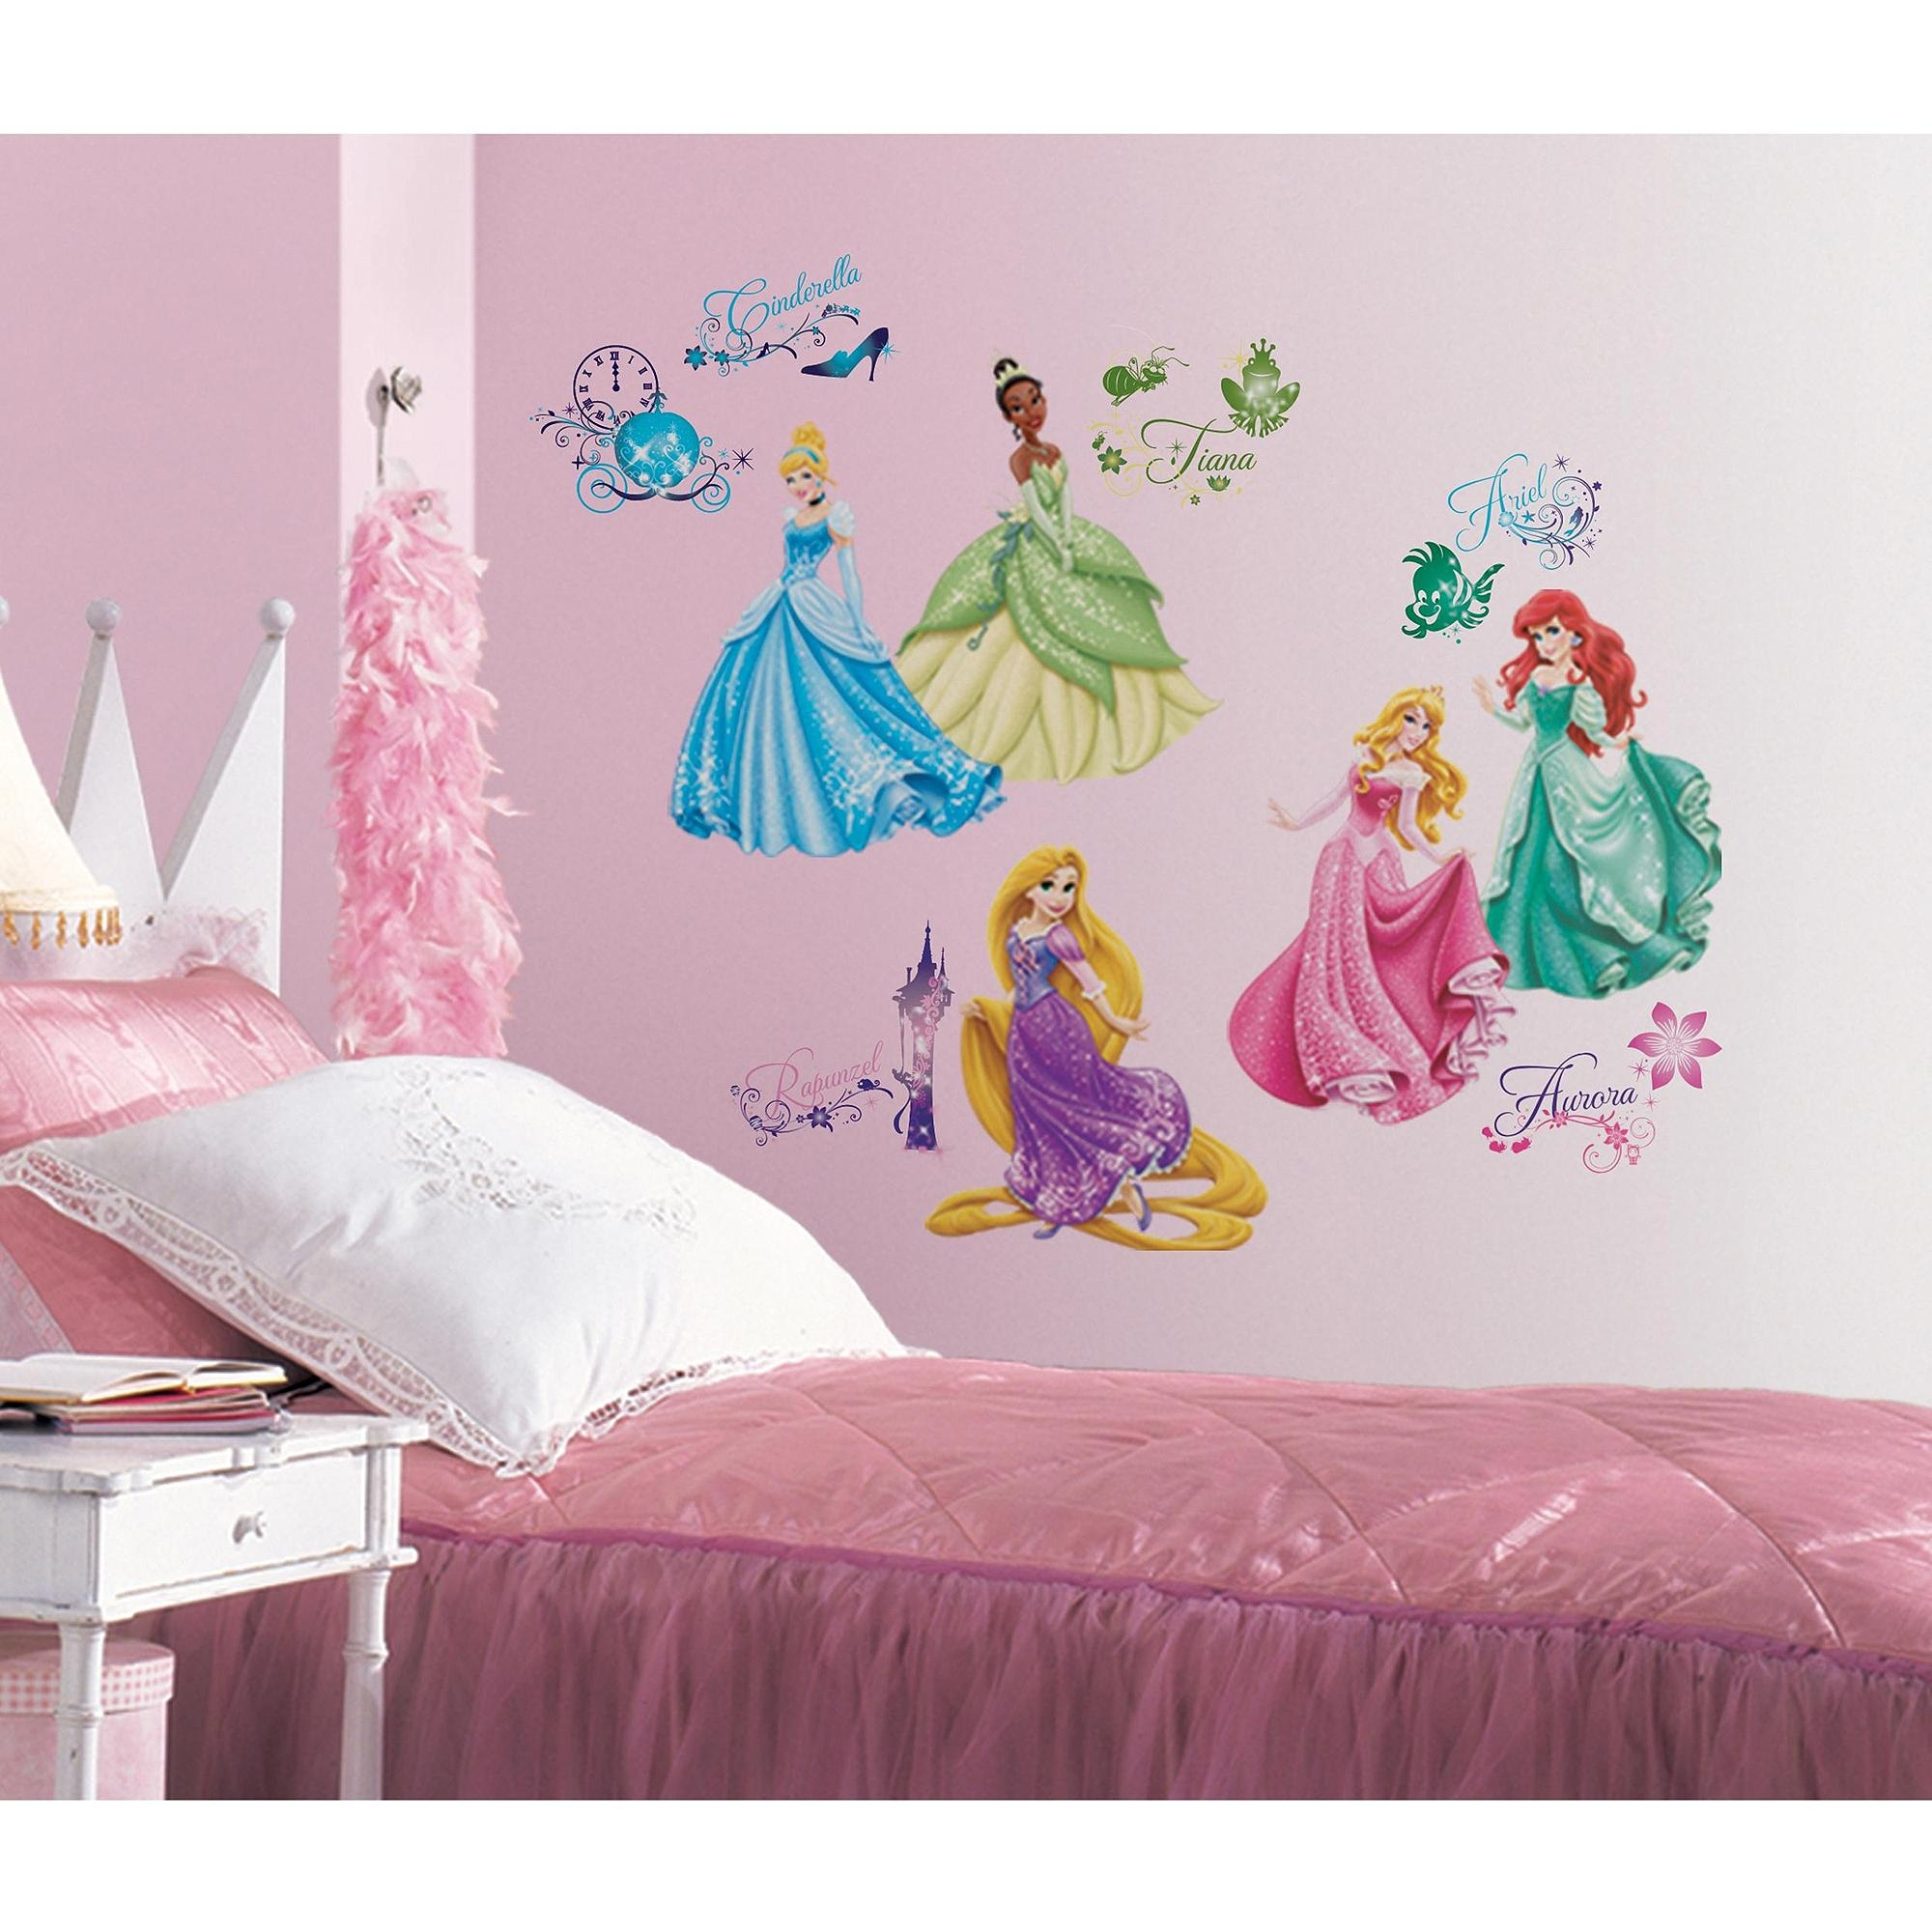 Disney Princess Royal Debut Peel And Stick Wall Decals – Walmart Inside Walmart Wall Stickers (View 19 of 20)